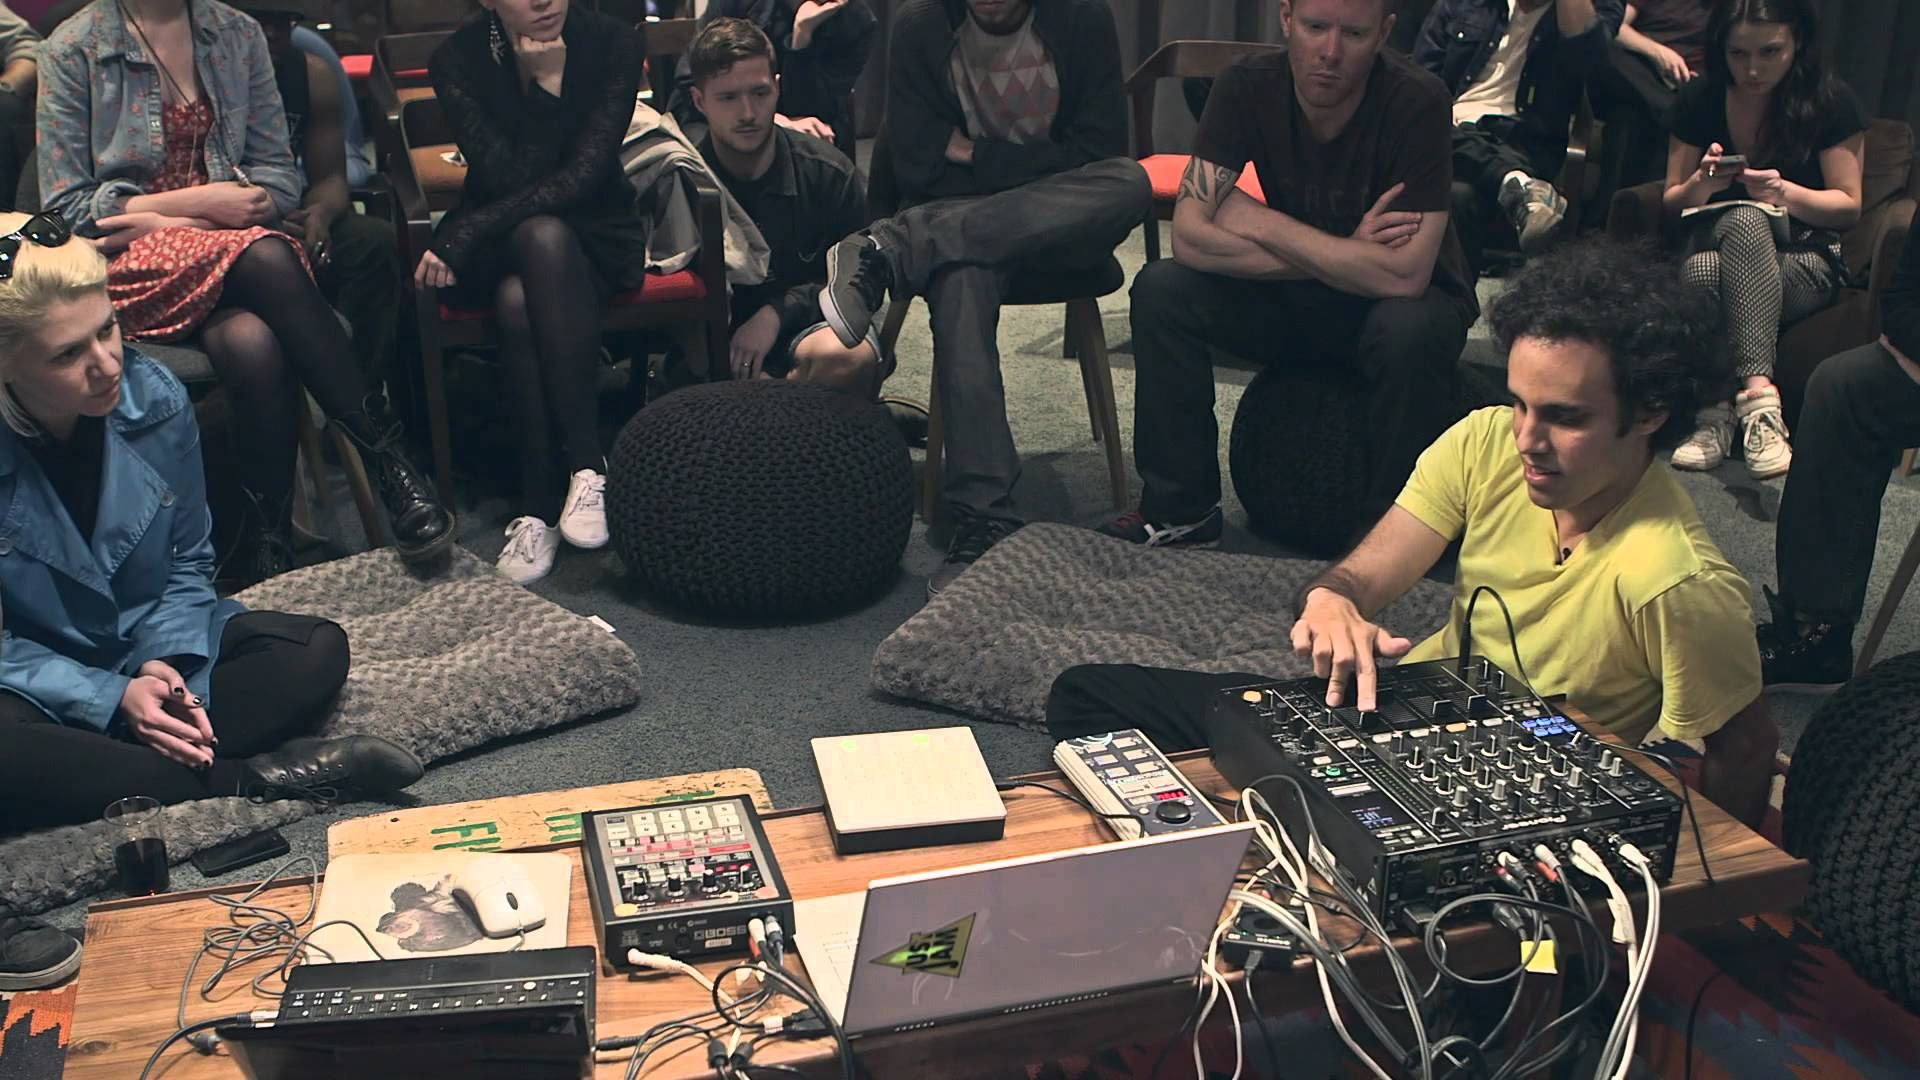 Four Tet breaks down his live set in New York at the 2013 Red Bull Music Academy. Four Tet: http://www.fourtet.net/ ------ Subscribe to our YouTube Channel: ...